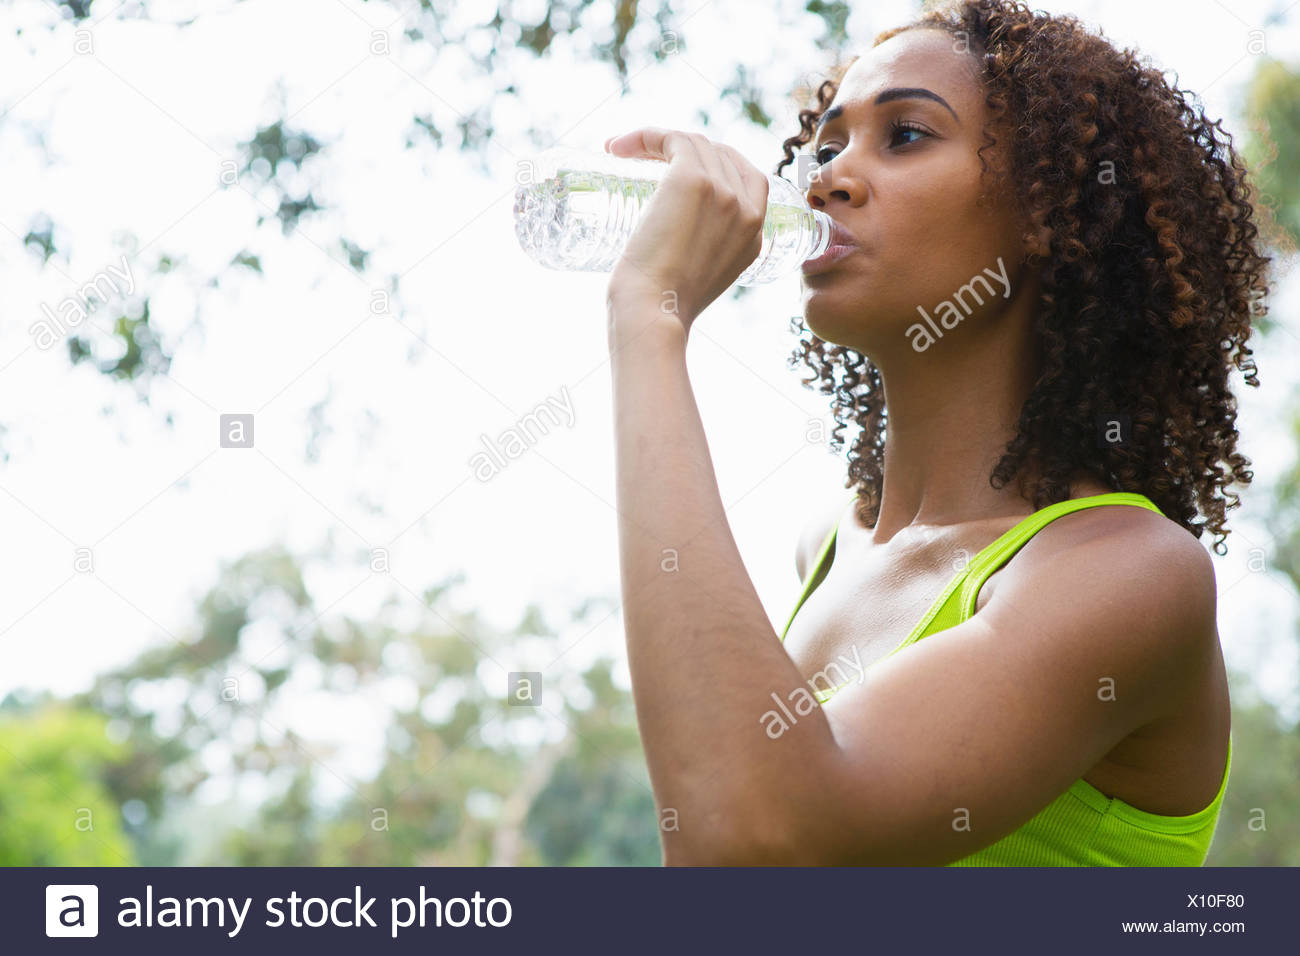 Mid adult woman drinking from water bottle - Stock Image